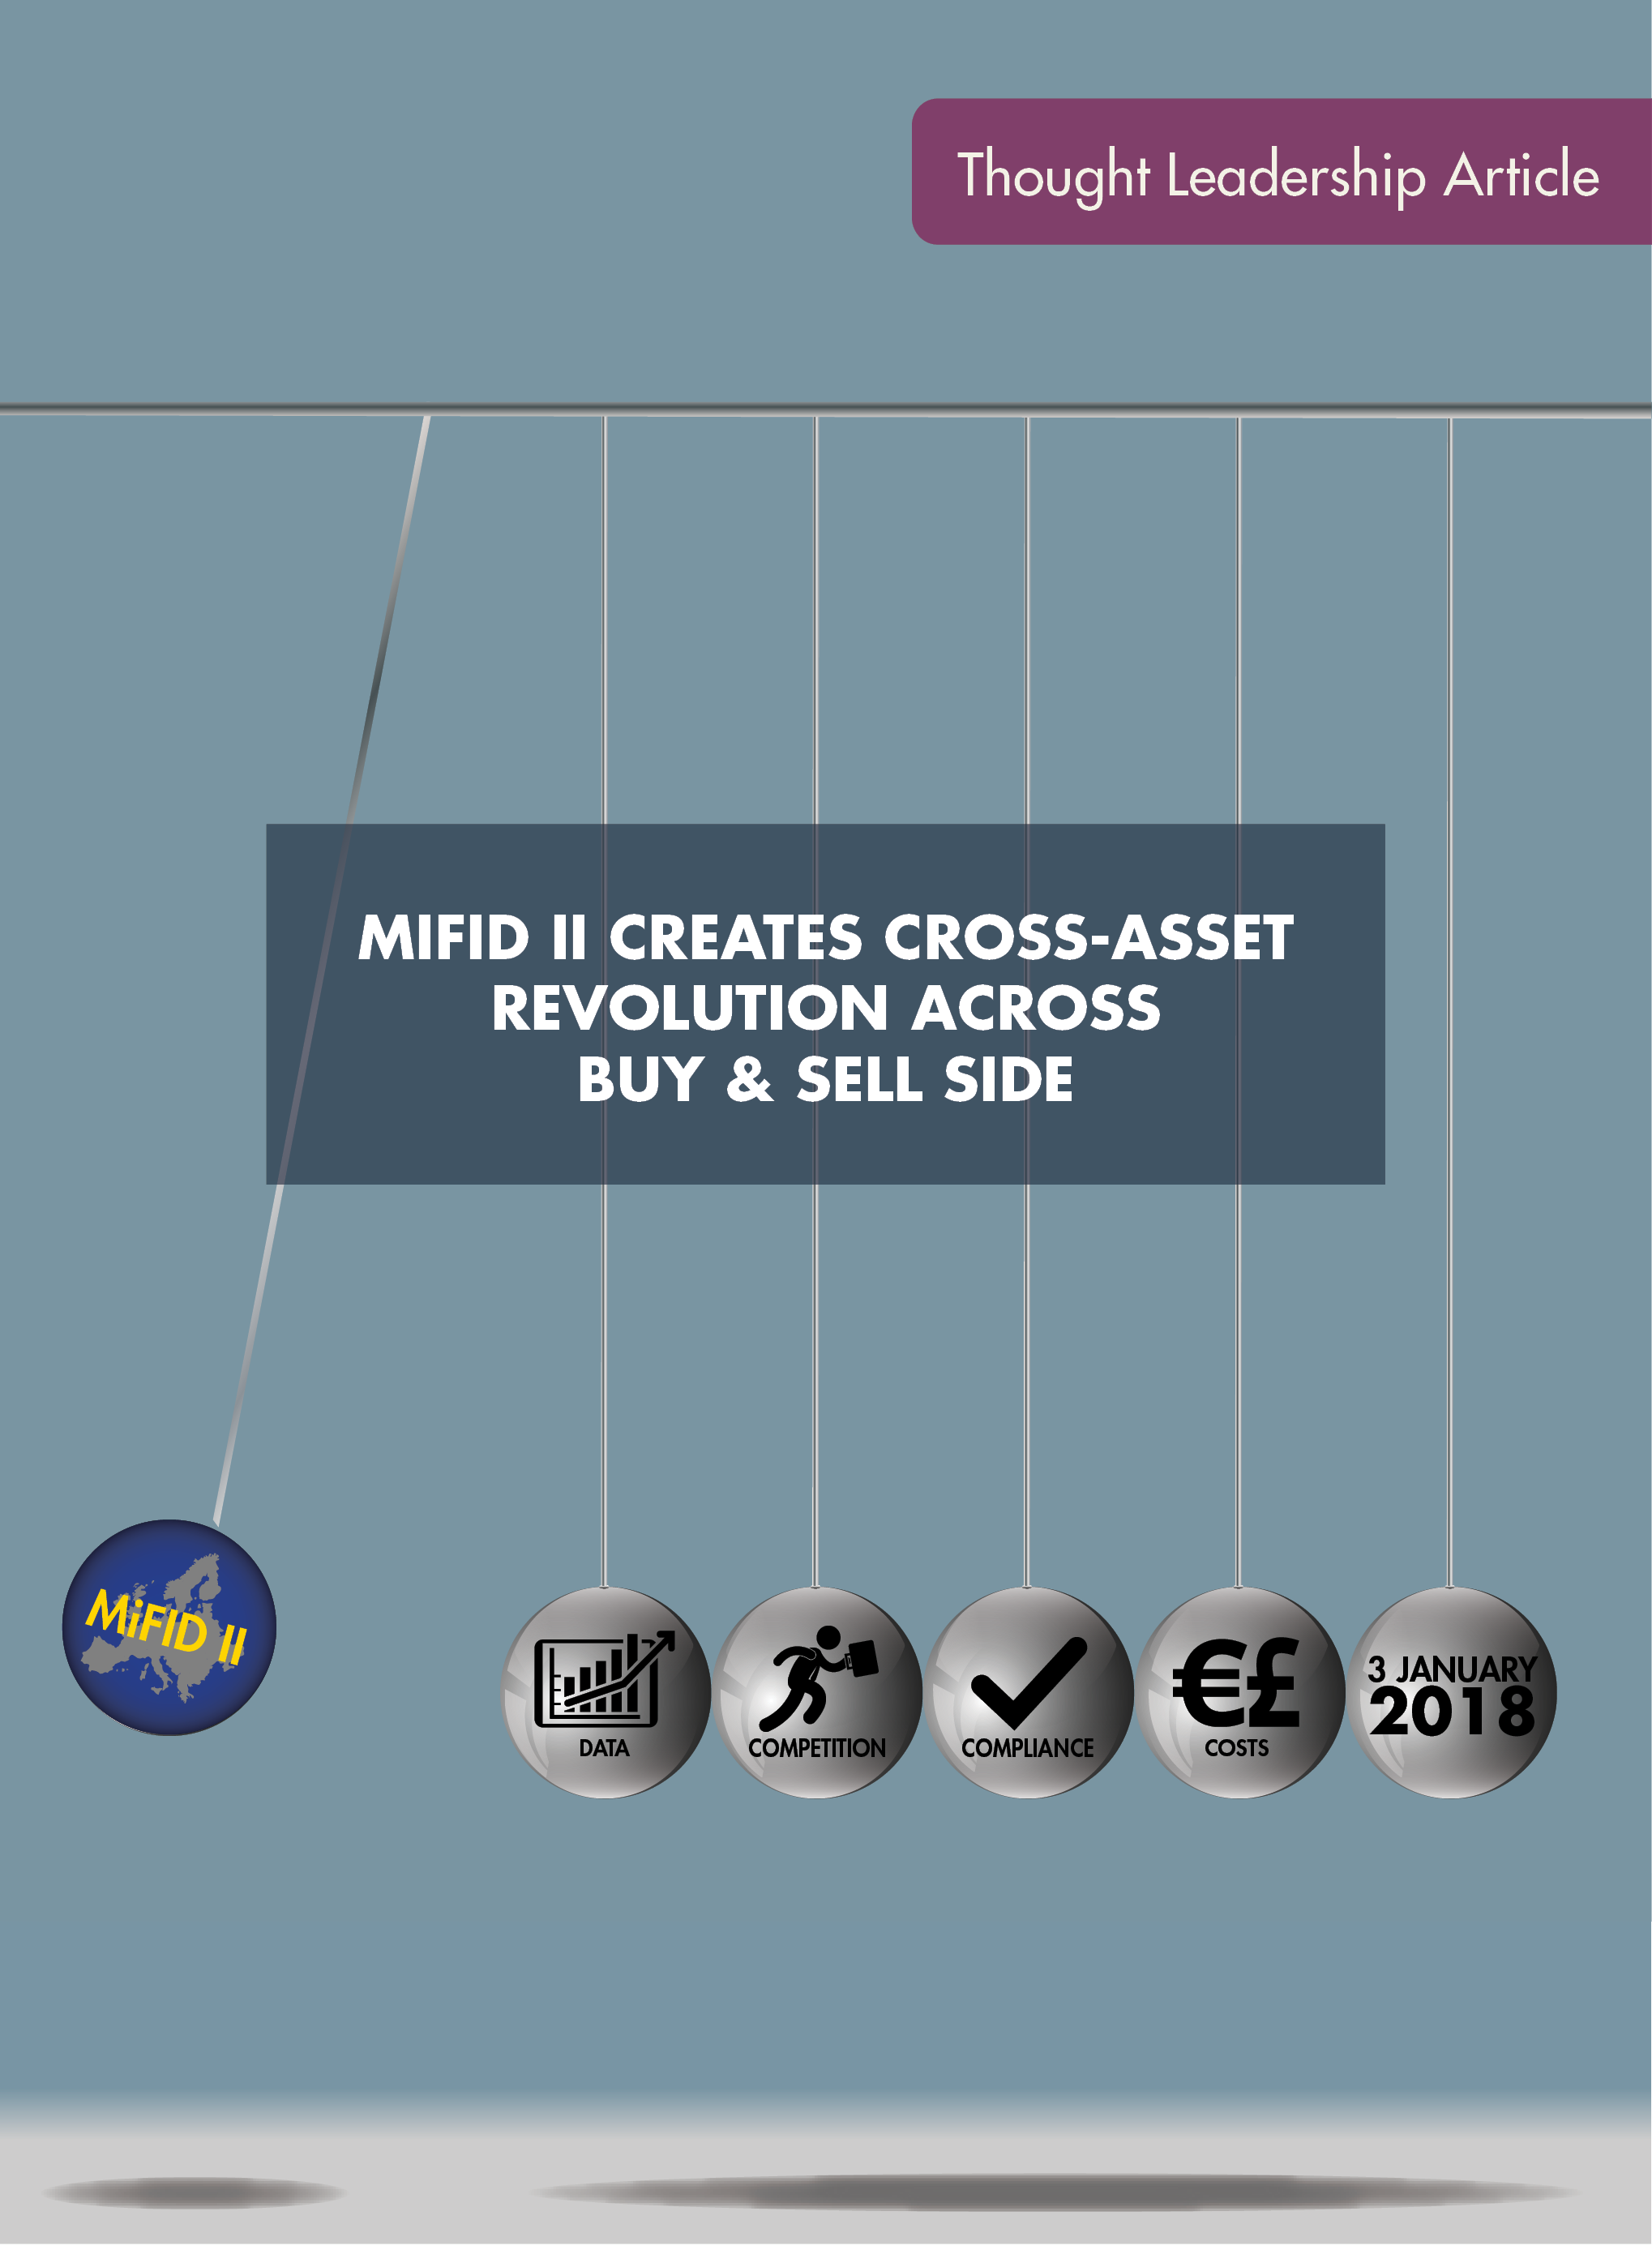 MiFID II Creates Cross-Asset Revolution Across Buy & Sell Side